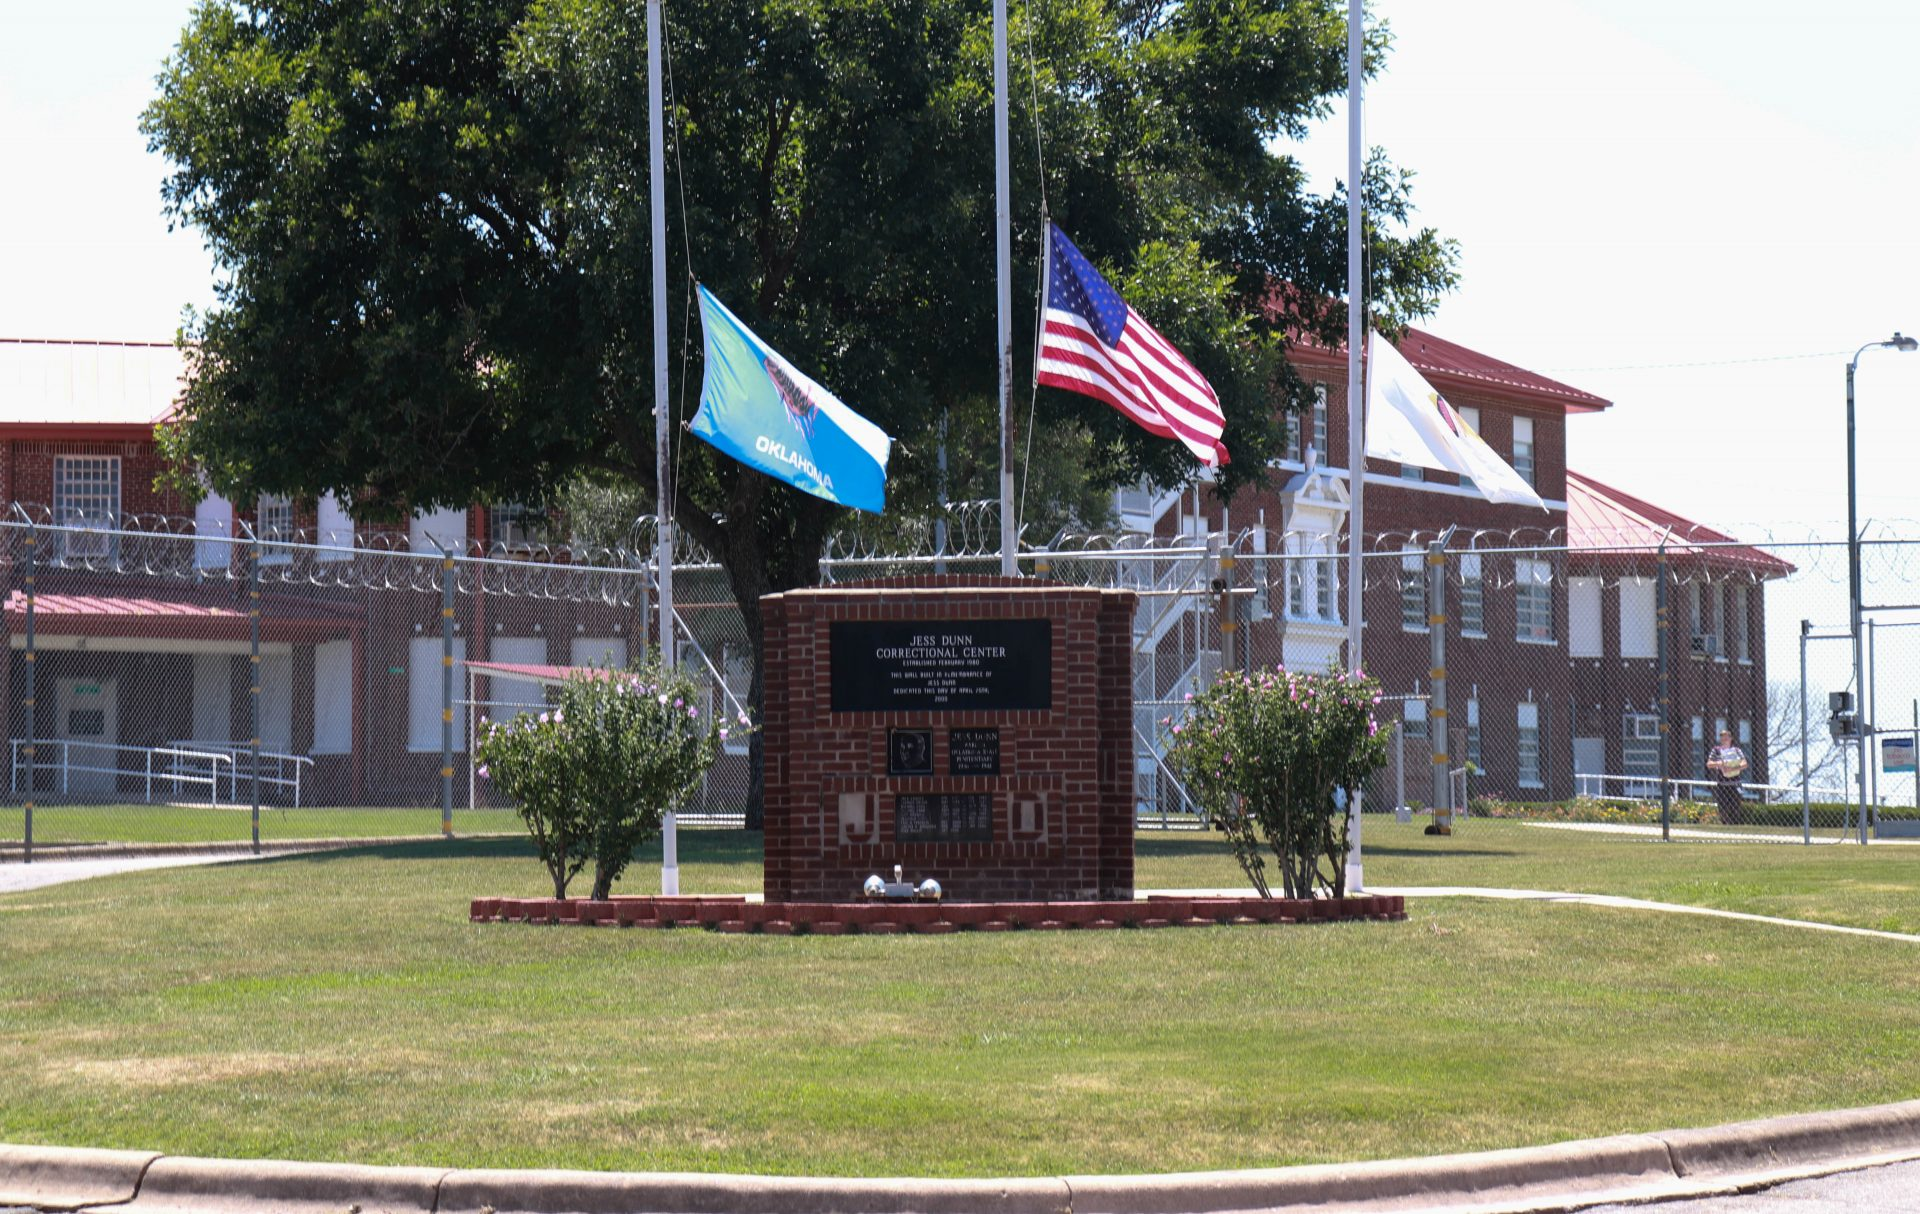 Flag Poles and a sign identifying Jess Dunn Correctional Center inside the prison's grounds.